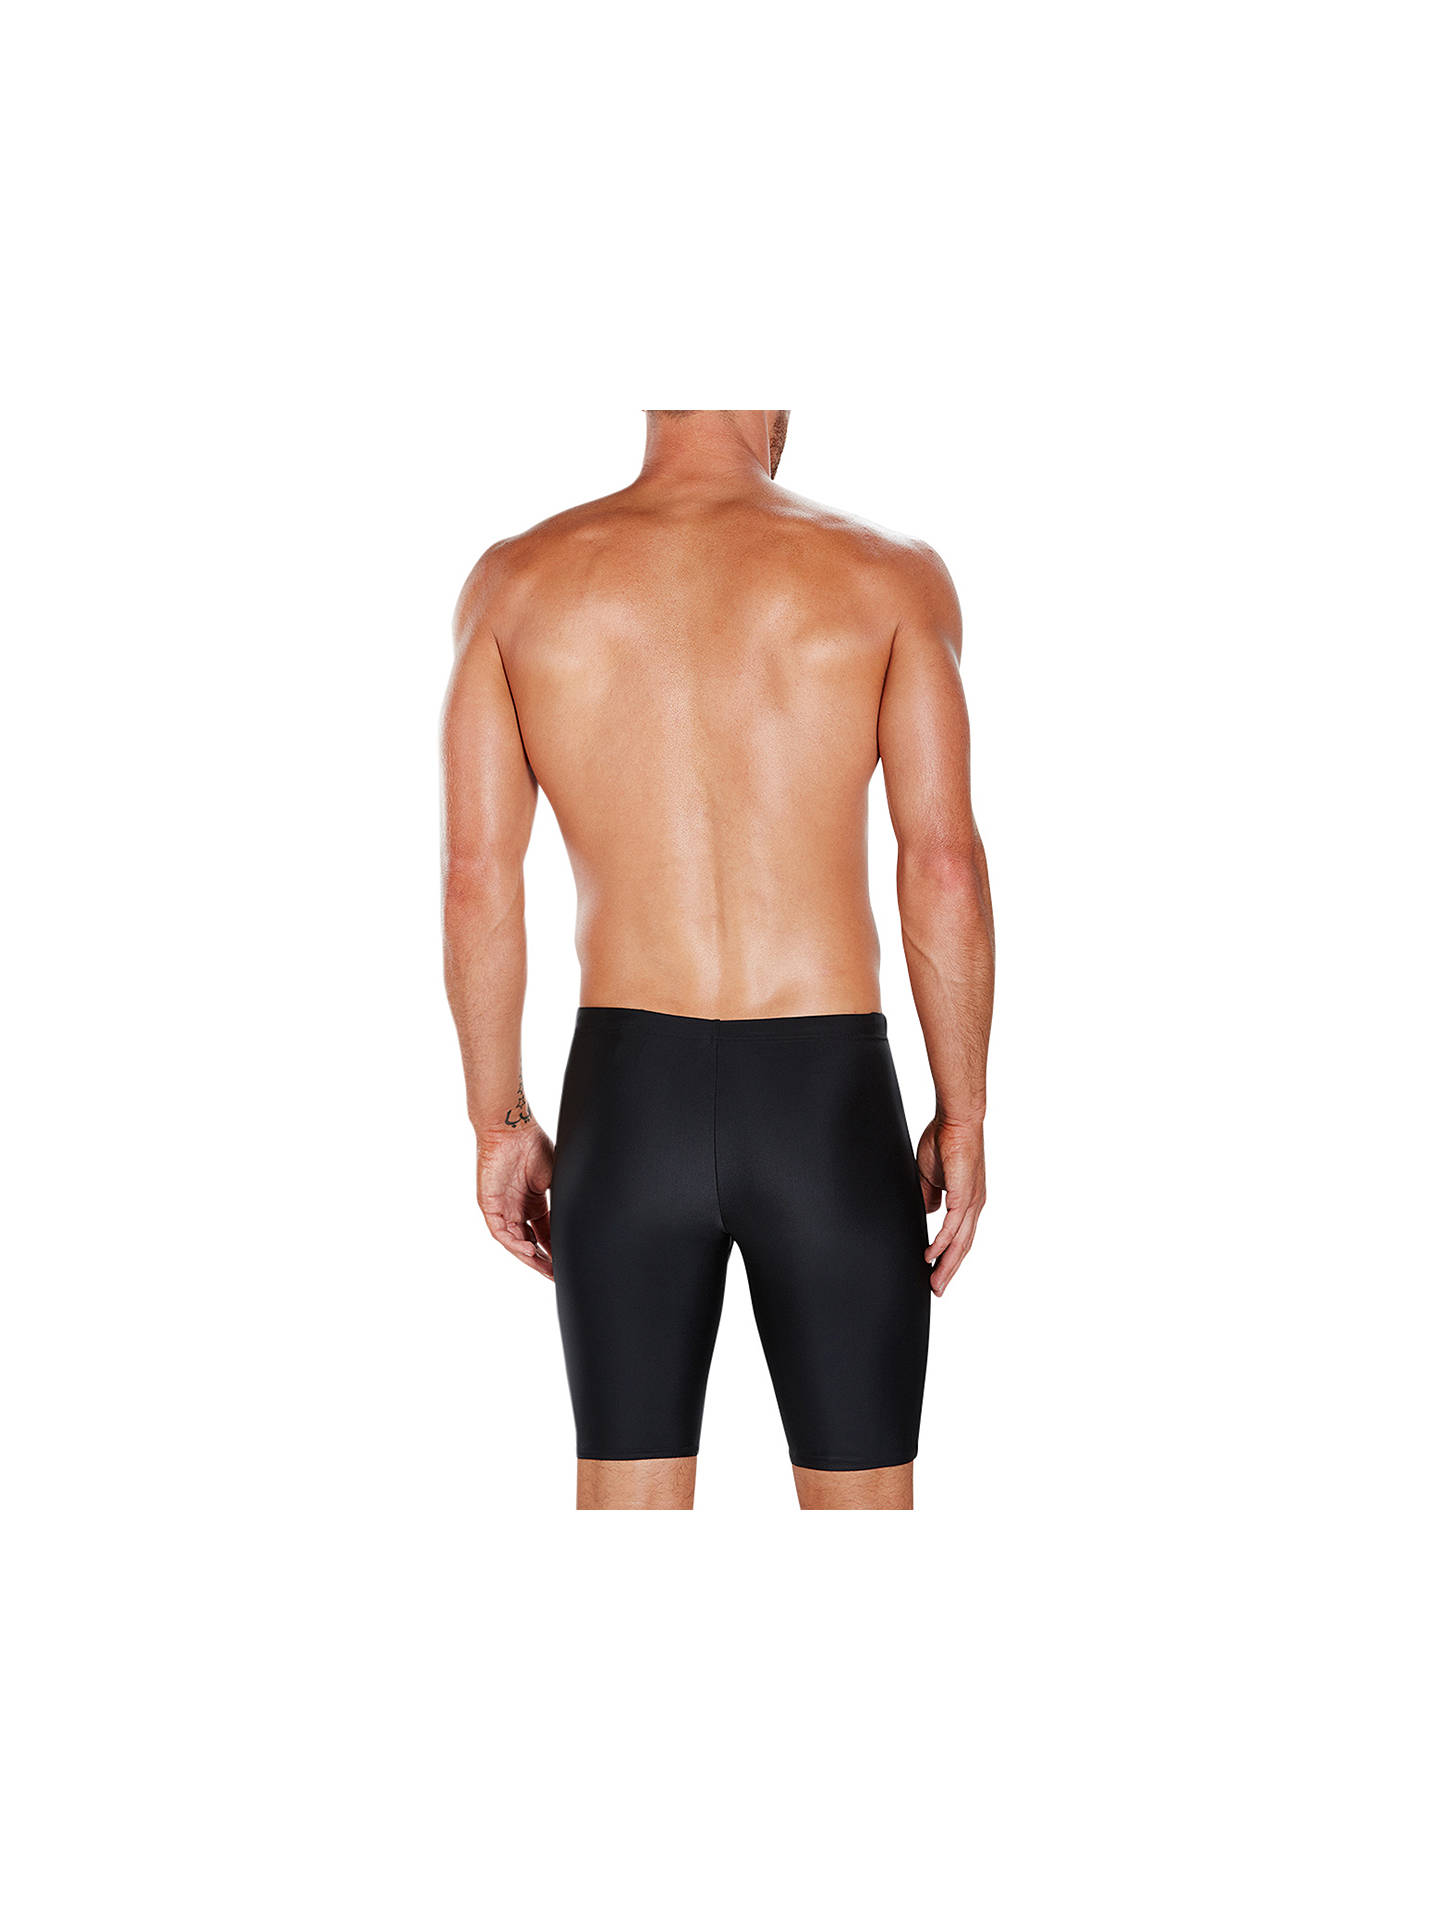 Buy Speedo Gala Logo Jammers Swimming Shorts, Black/Charcoal, 30L Online at johnlewis.com